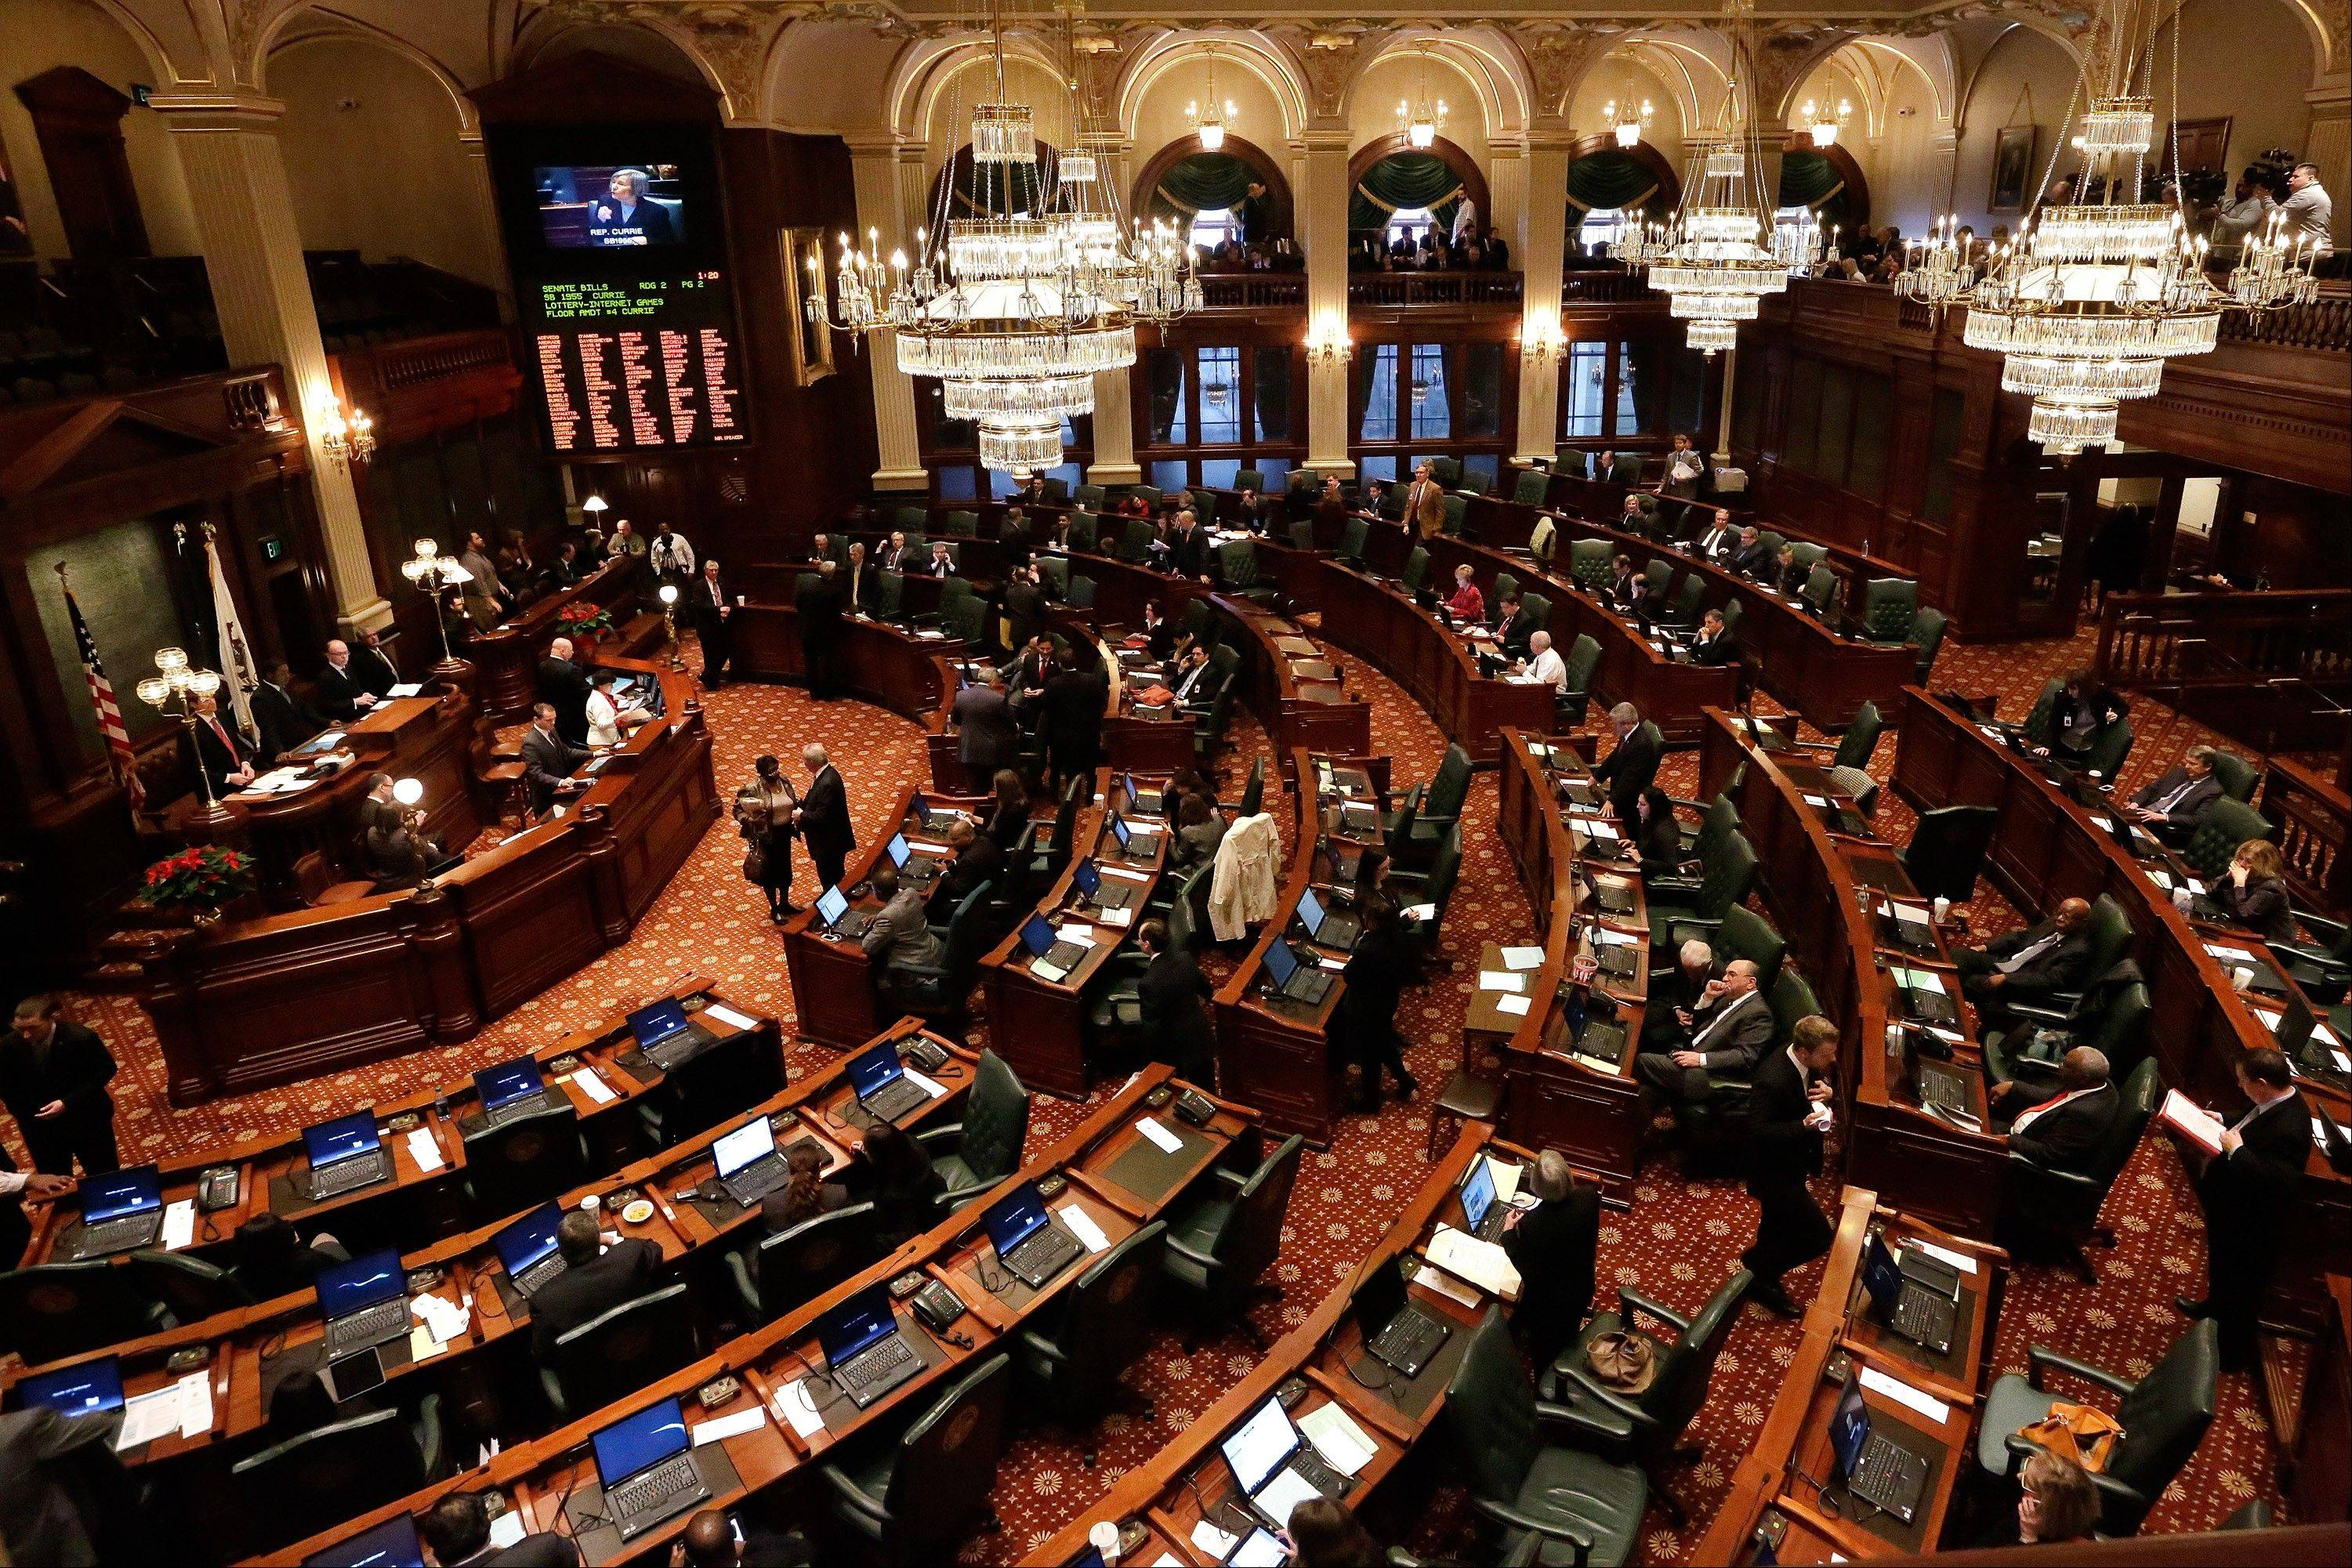 Lawmakers worked toward passing pension legislation while on the House floor during session in December 2013 at the Illinois State Capitol in Springfield.